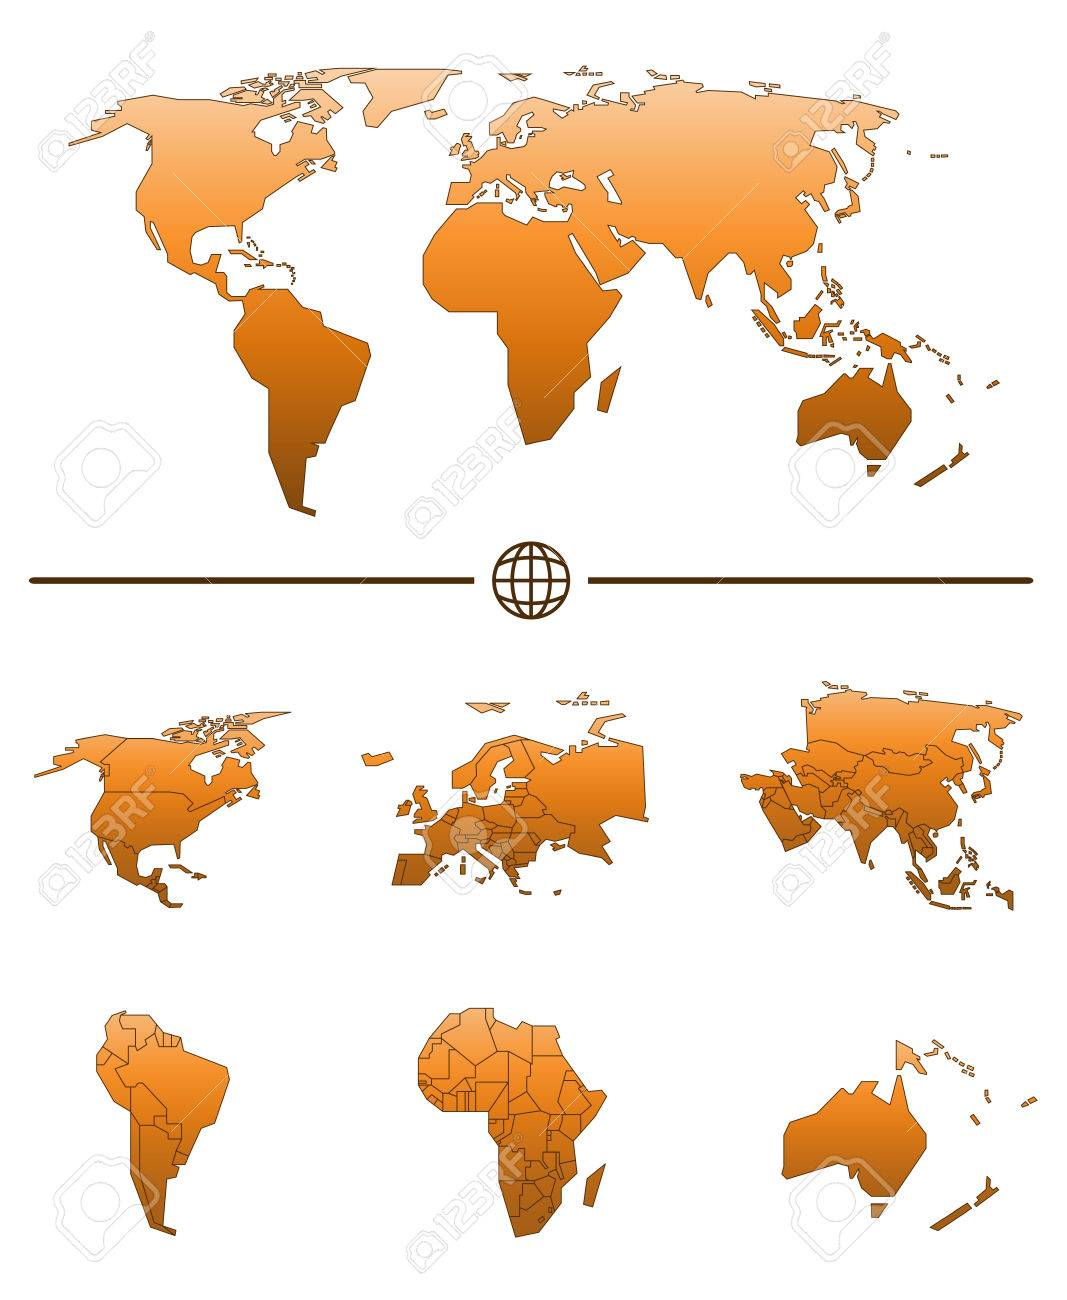 World Map Shape And Separated Continents With States Tuned In - World map shape